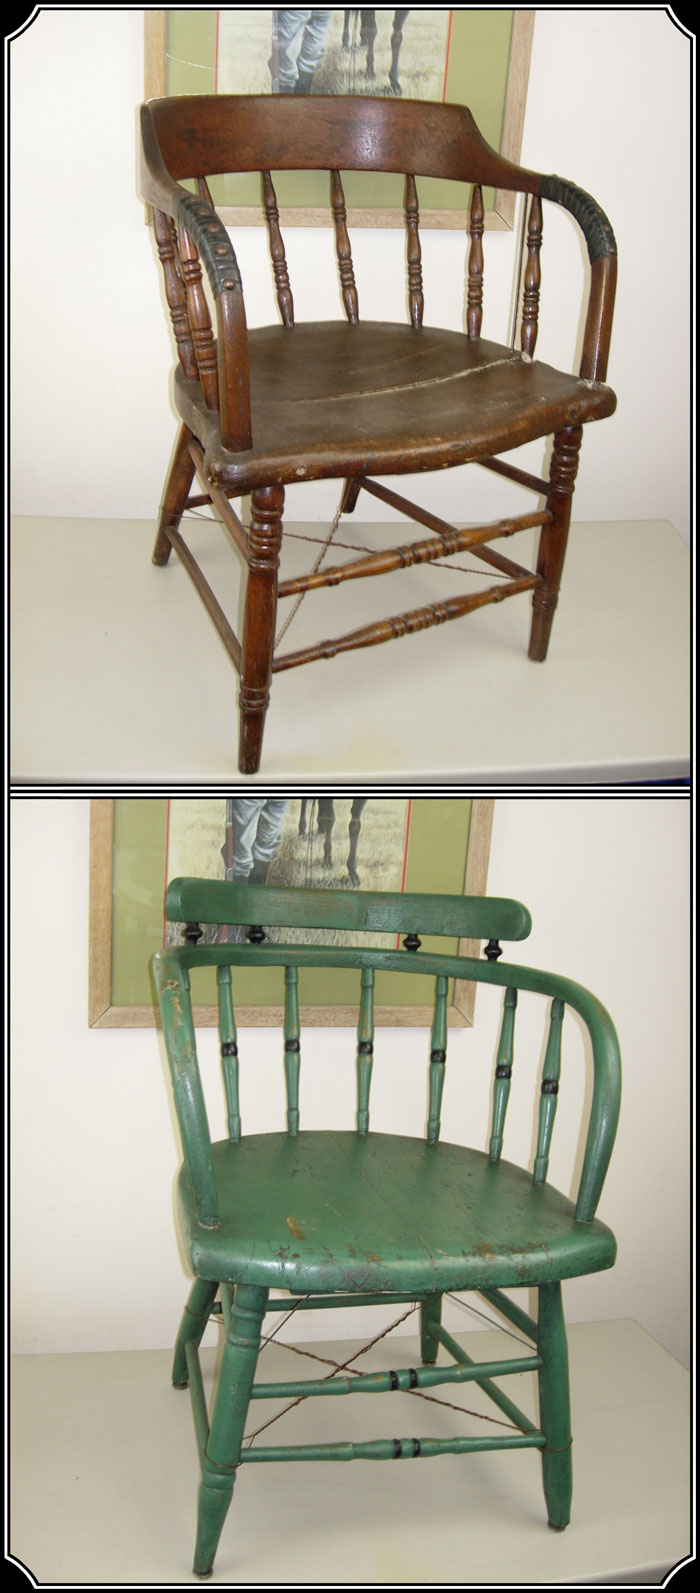 z Sold ~ Saloon Chair, Captains chair, caboose chair.